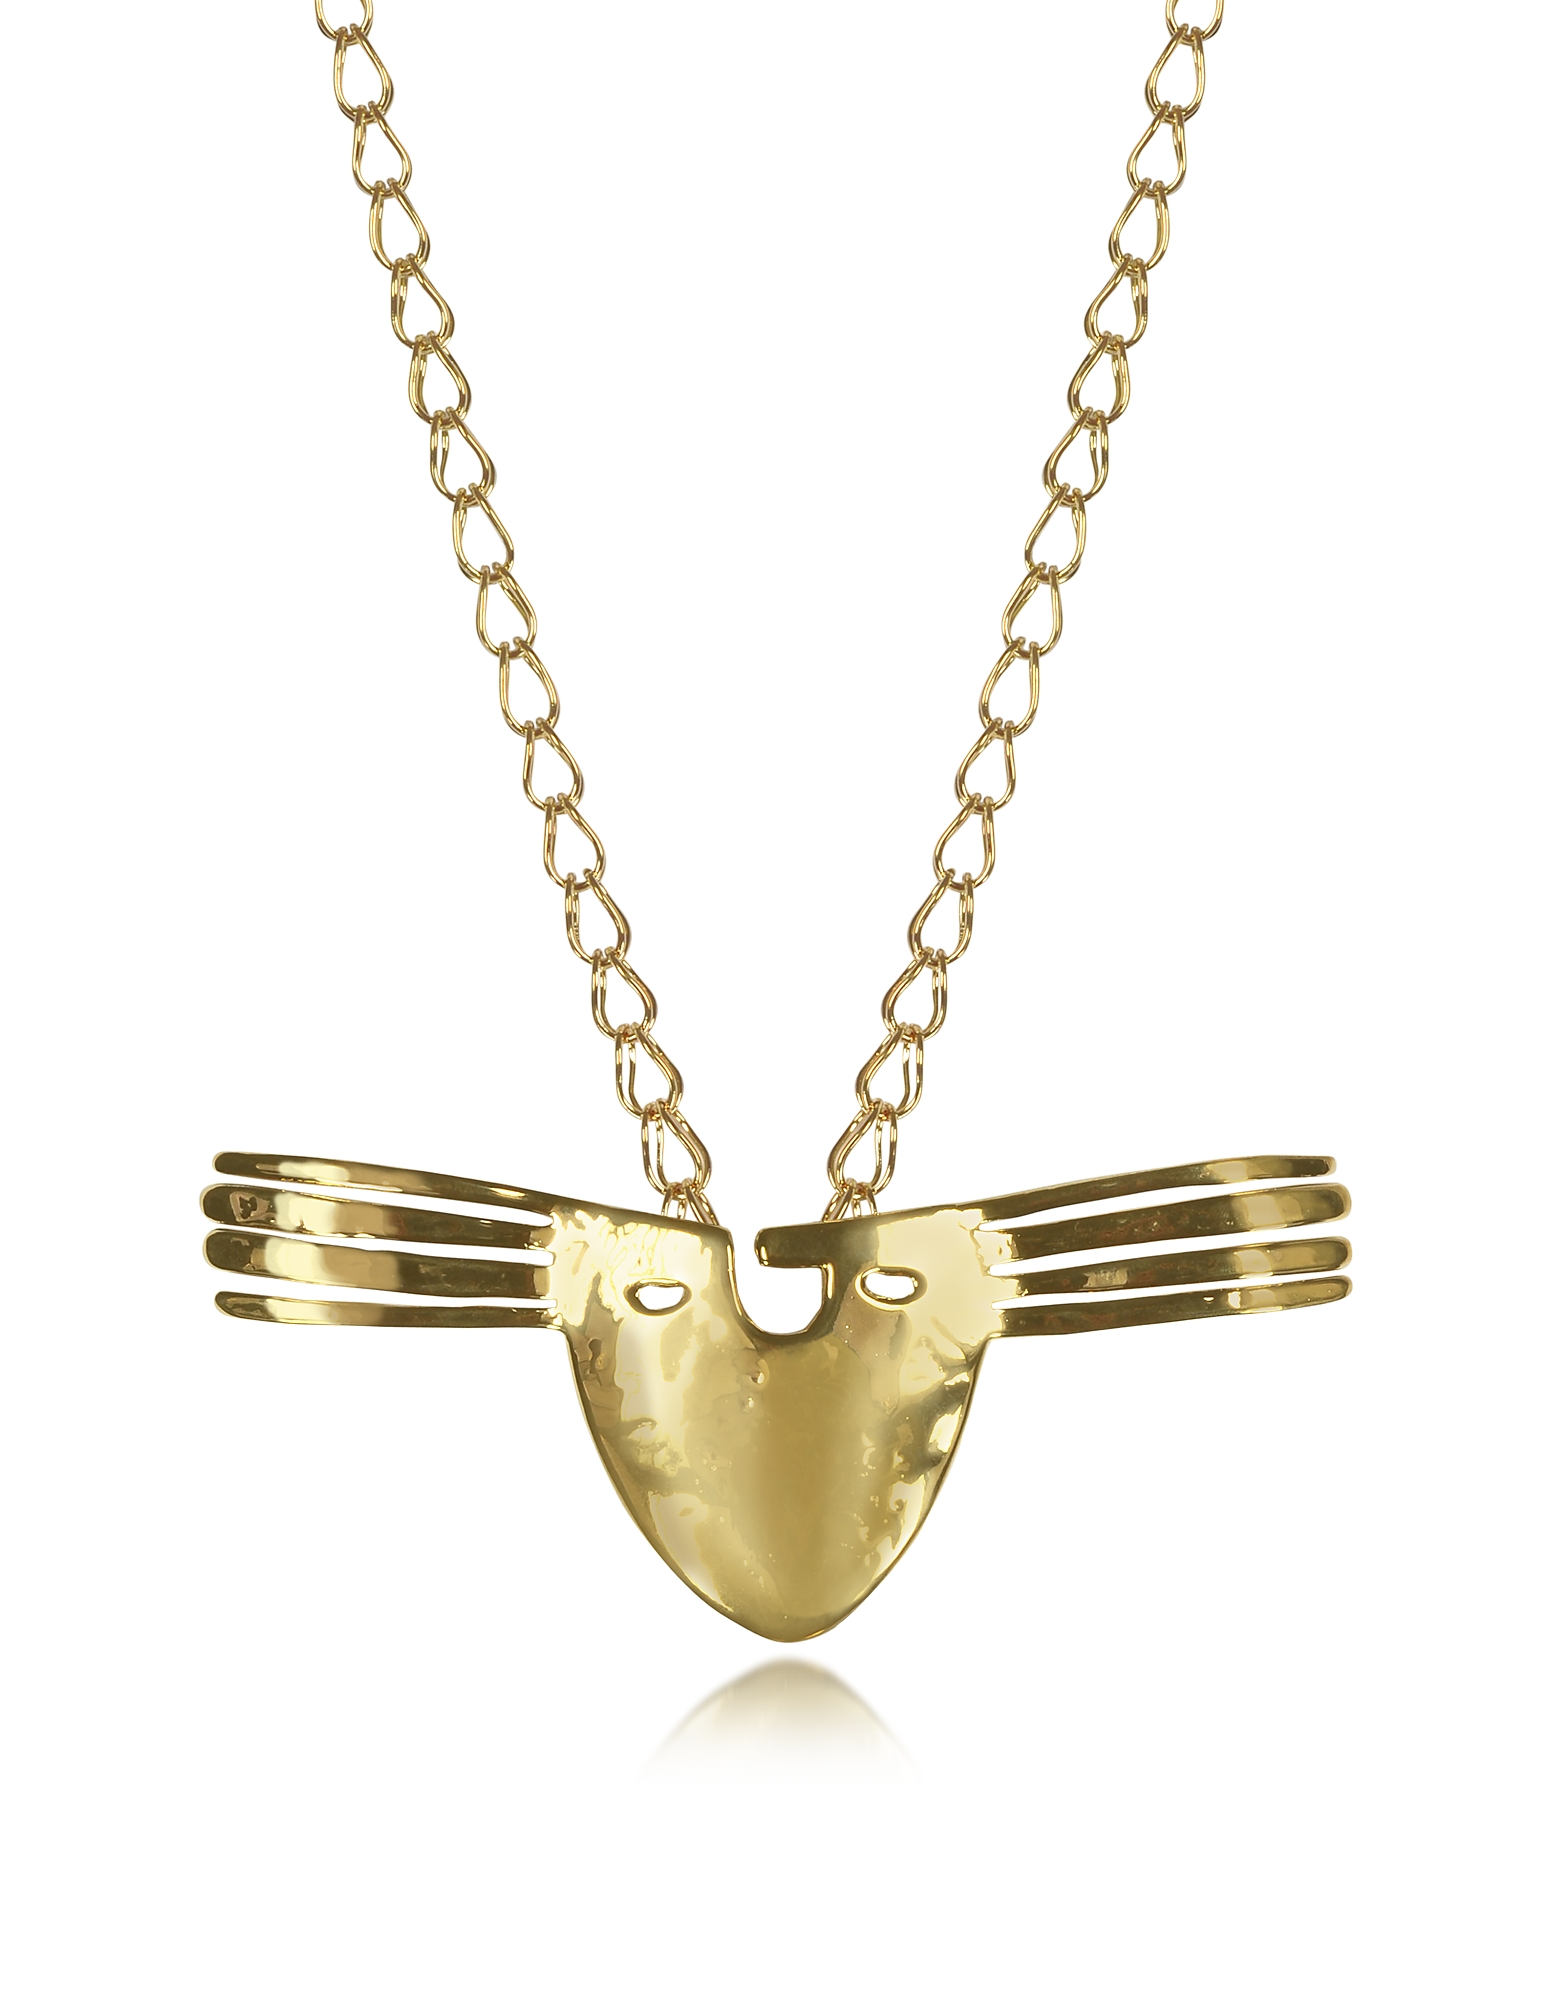 Aurelie Bidermann Necklaces, 18K gold-plated Brass Melina Long Necklace